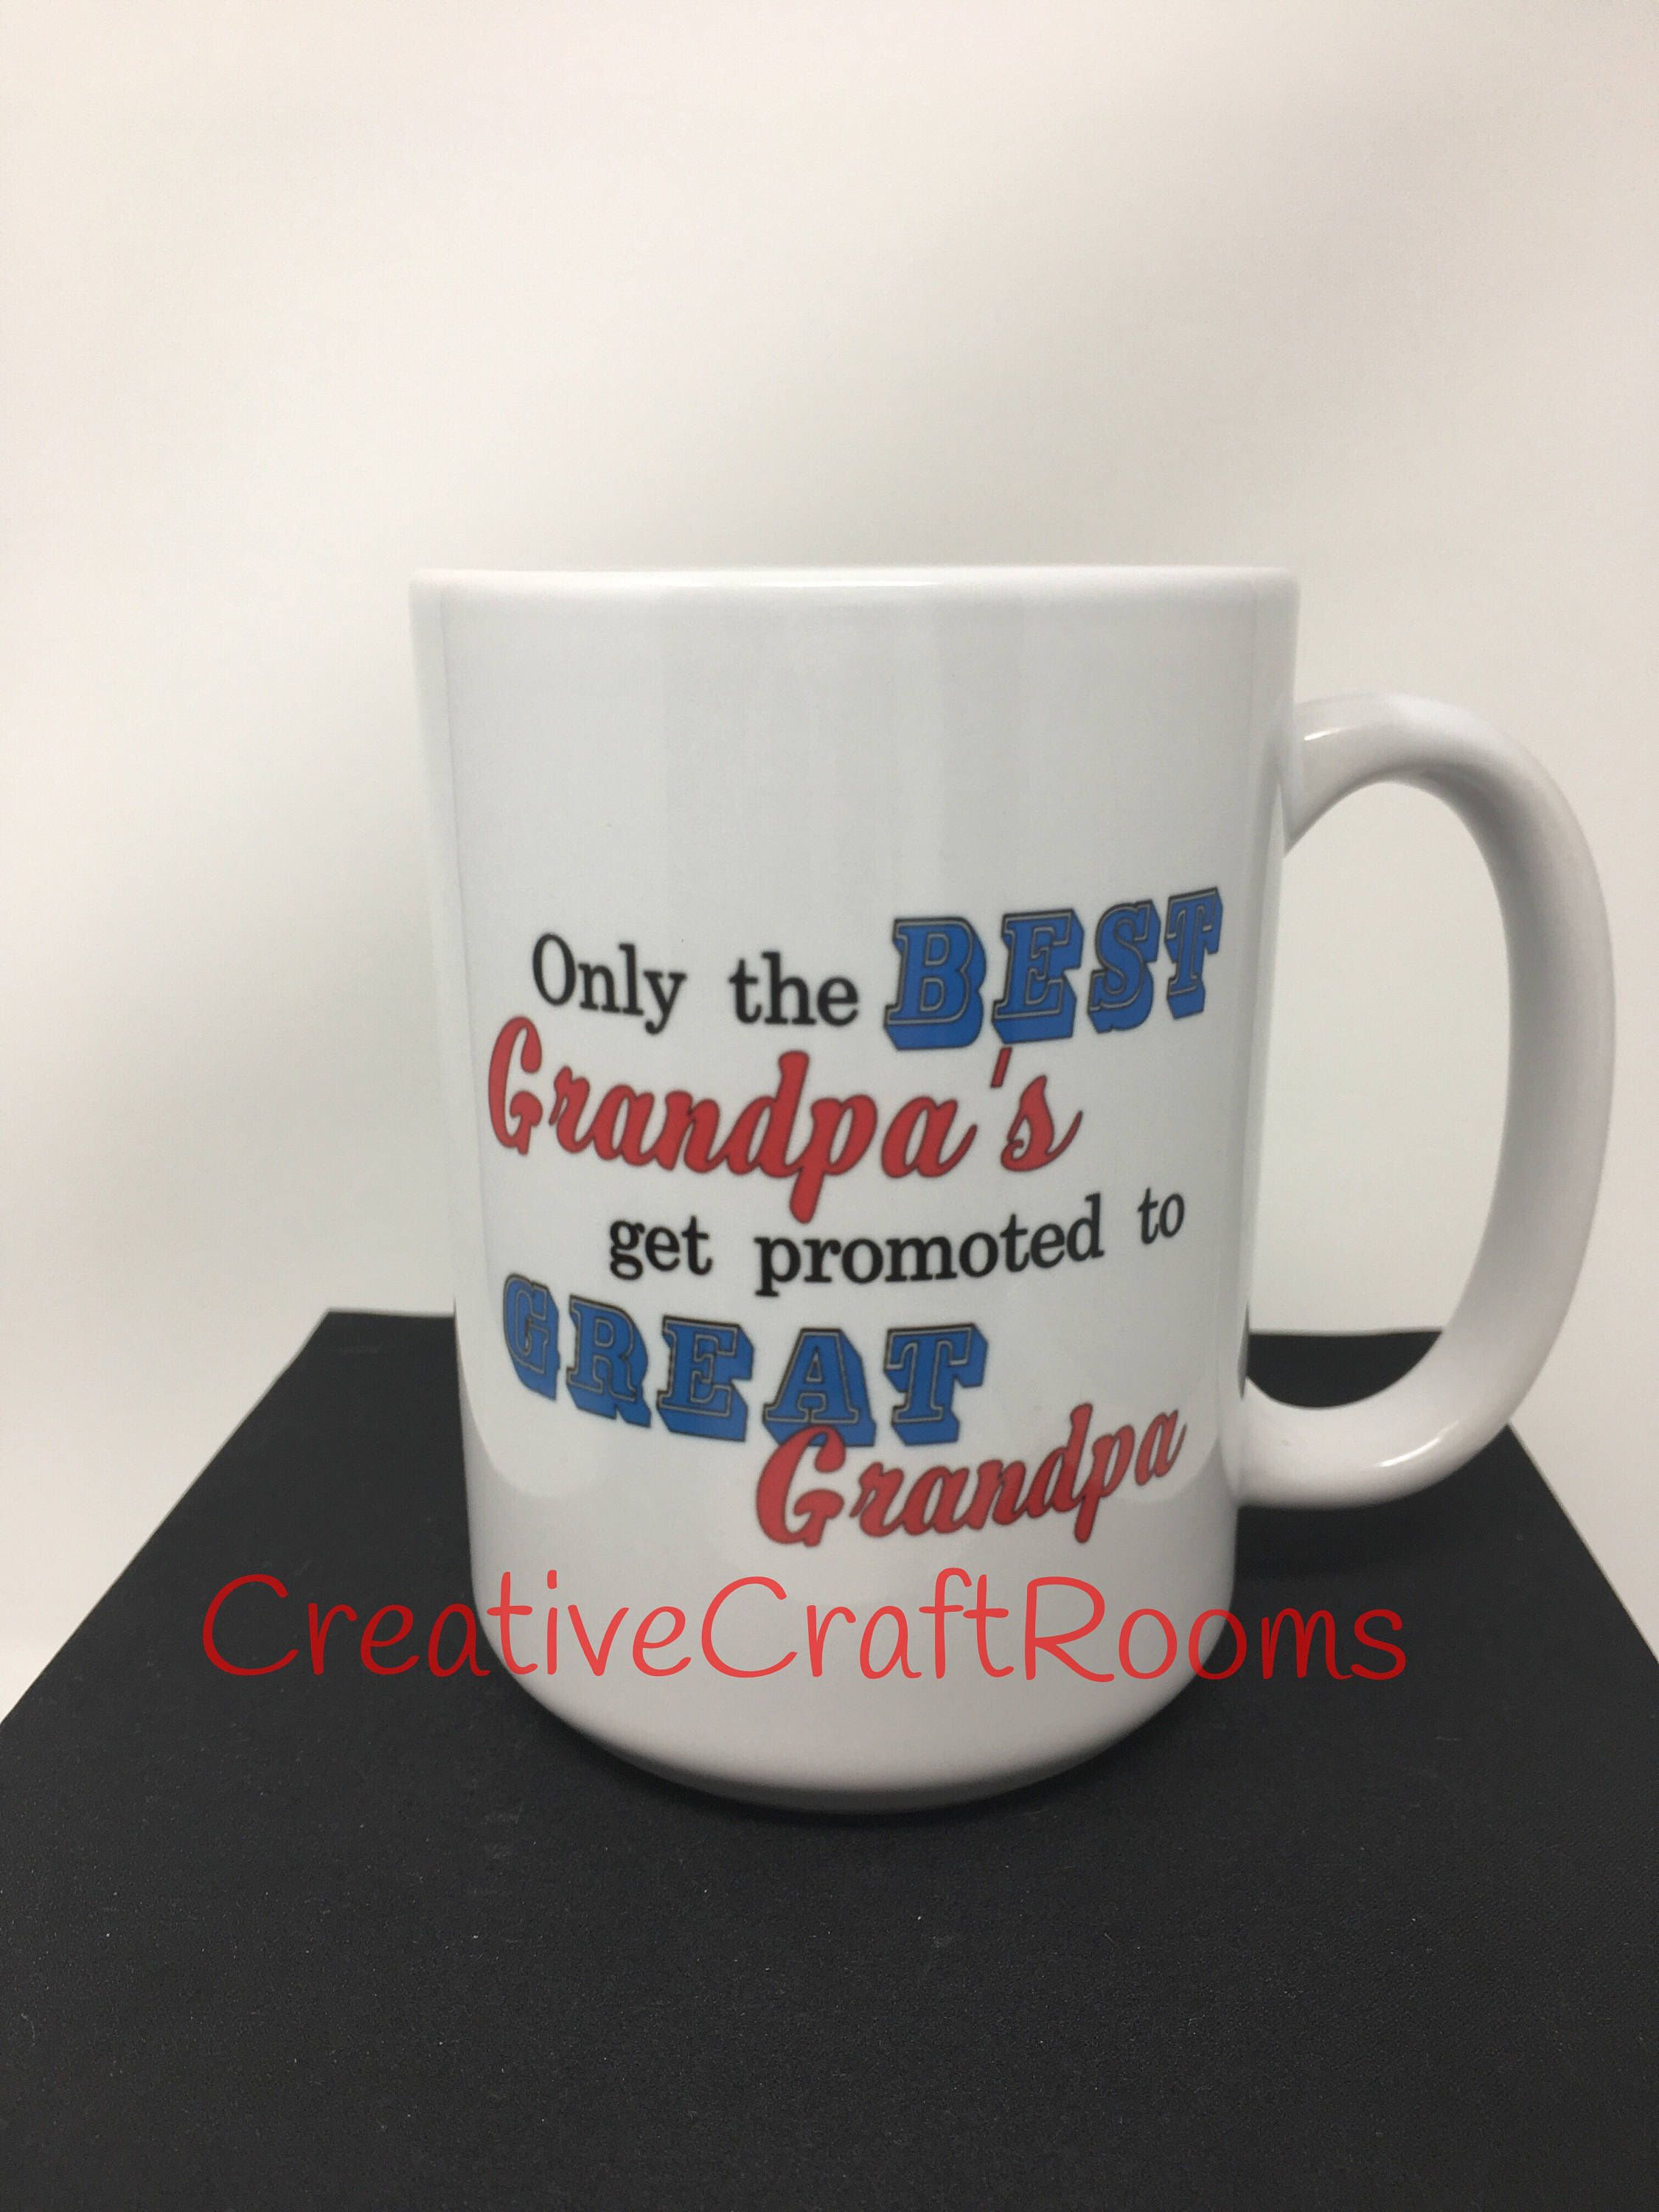 ab9528fe6c1 Only the Best Grandpa's get promoted to Great Grandpa Mug, Grandpa Mug,  Grandfather Mug